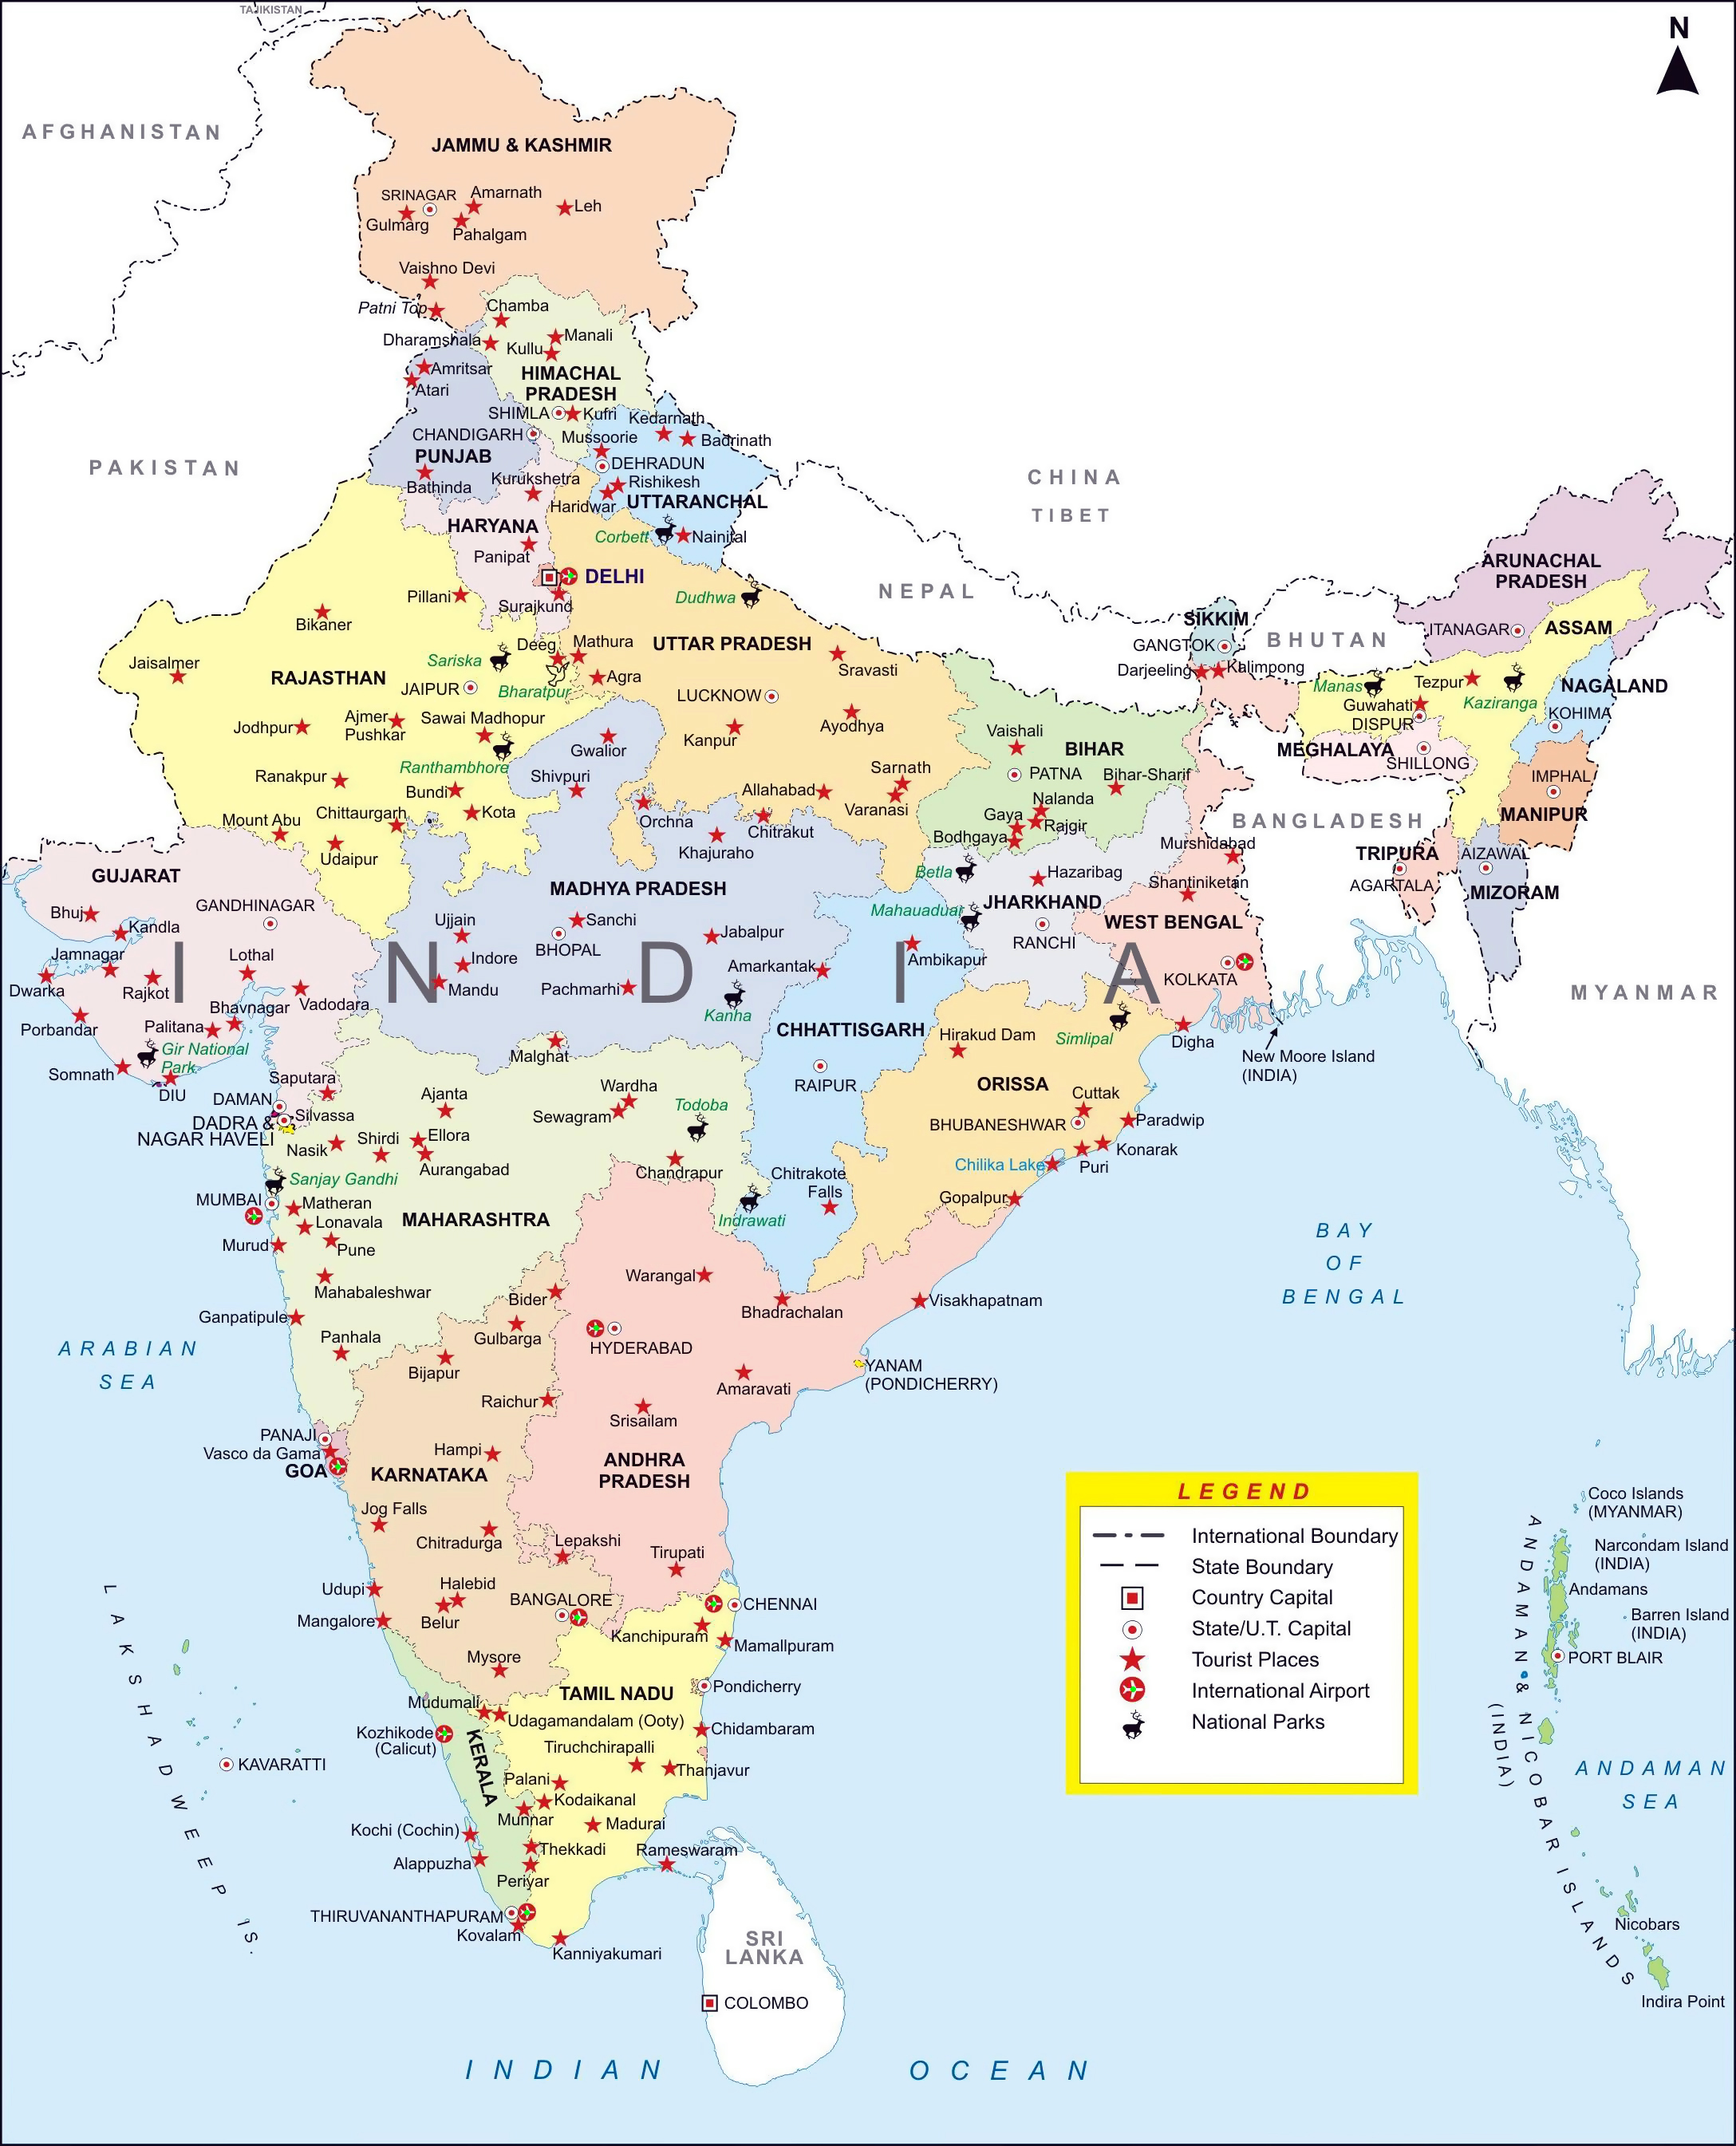 Large Detailed Administrative Map Of India With Major Cities - Georgia map with major cities